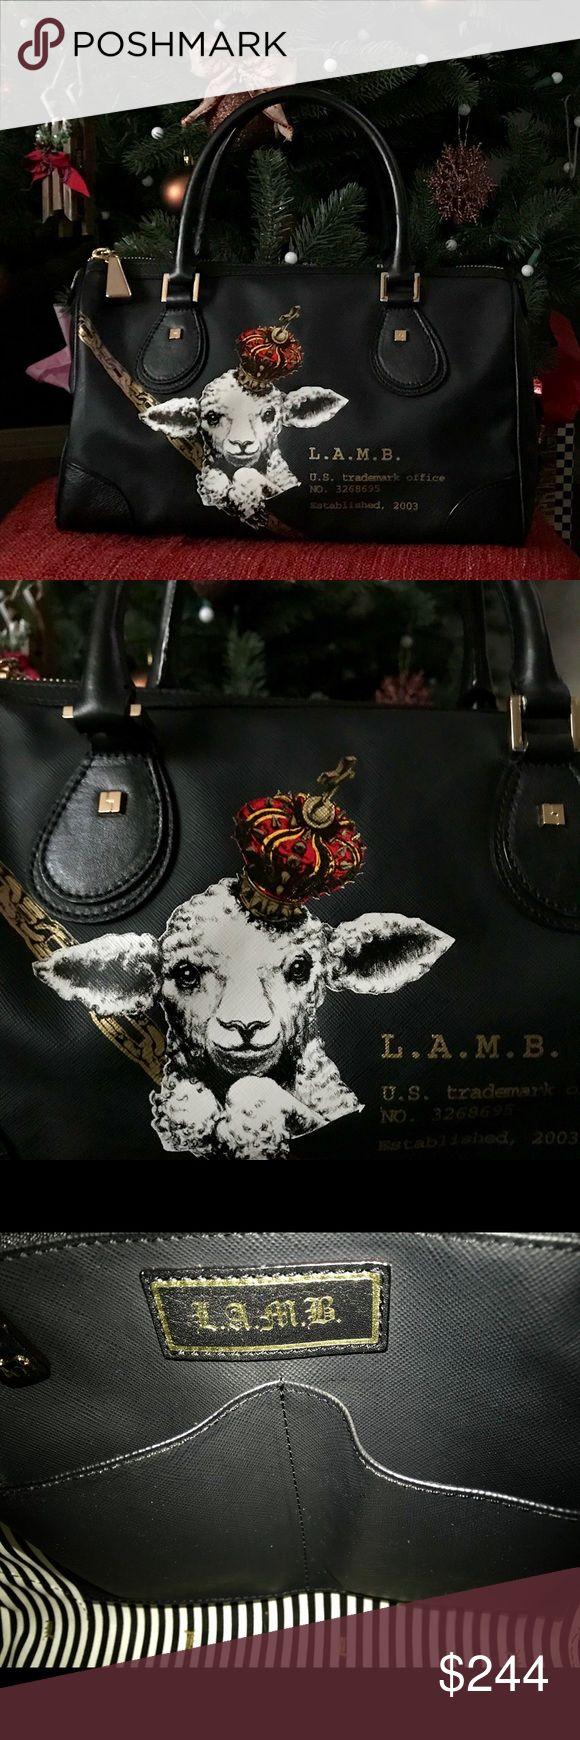 "✨L.A.M.B.✨ LAMB handbag has little signs of wear nothing to noticeable. As shown on pictures. I say it's 10/10 please look at all pictures and ask questions.  leather trim. Holds your wallet, keys, sunglasses, lipstick and personal technology. Dual handles. Handle drop: 6"" length.  Size: 13"" wide across bottom, 13"" wide across center, 13"" wide across top x 6"" deep x 9"" high. L.A.M.B. Bags Satchels"